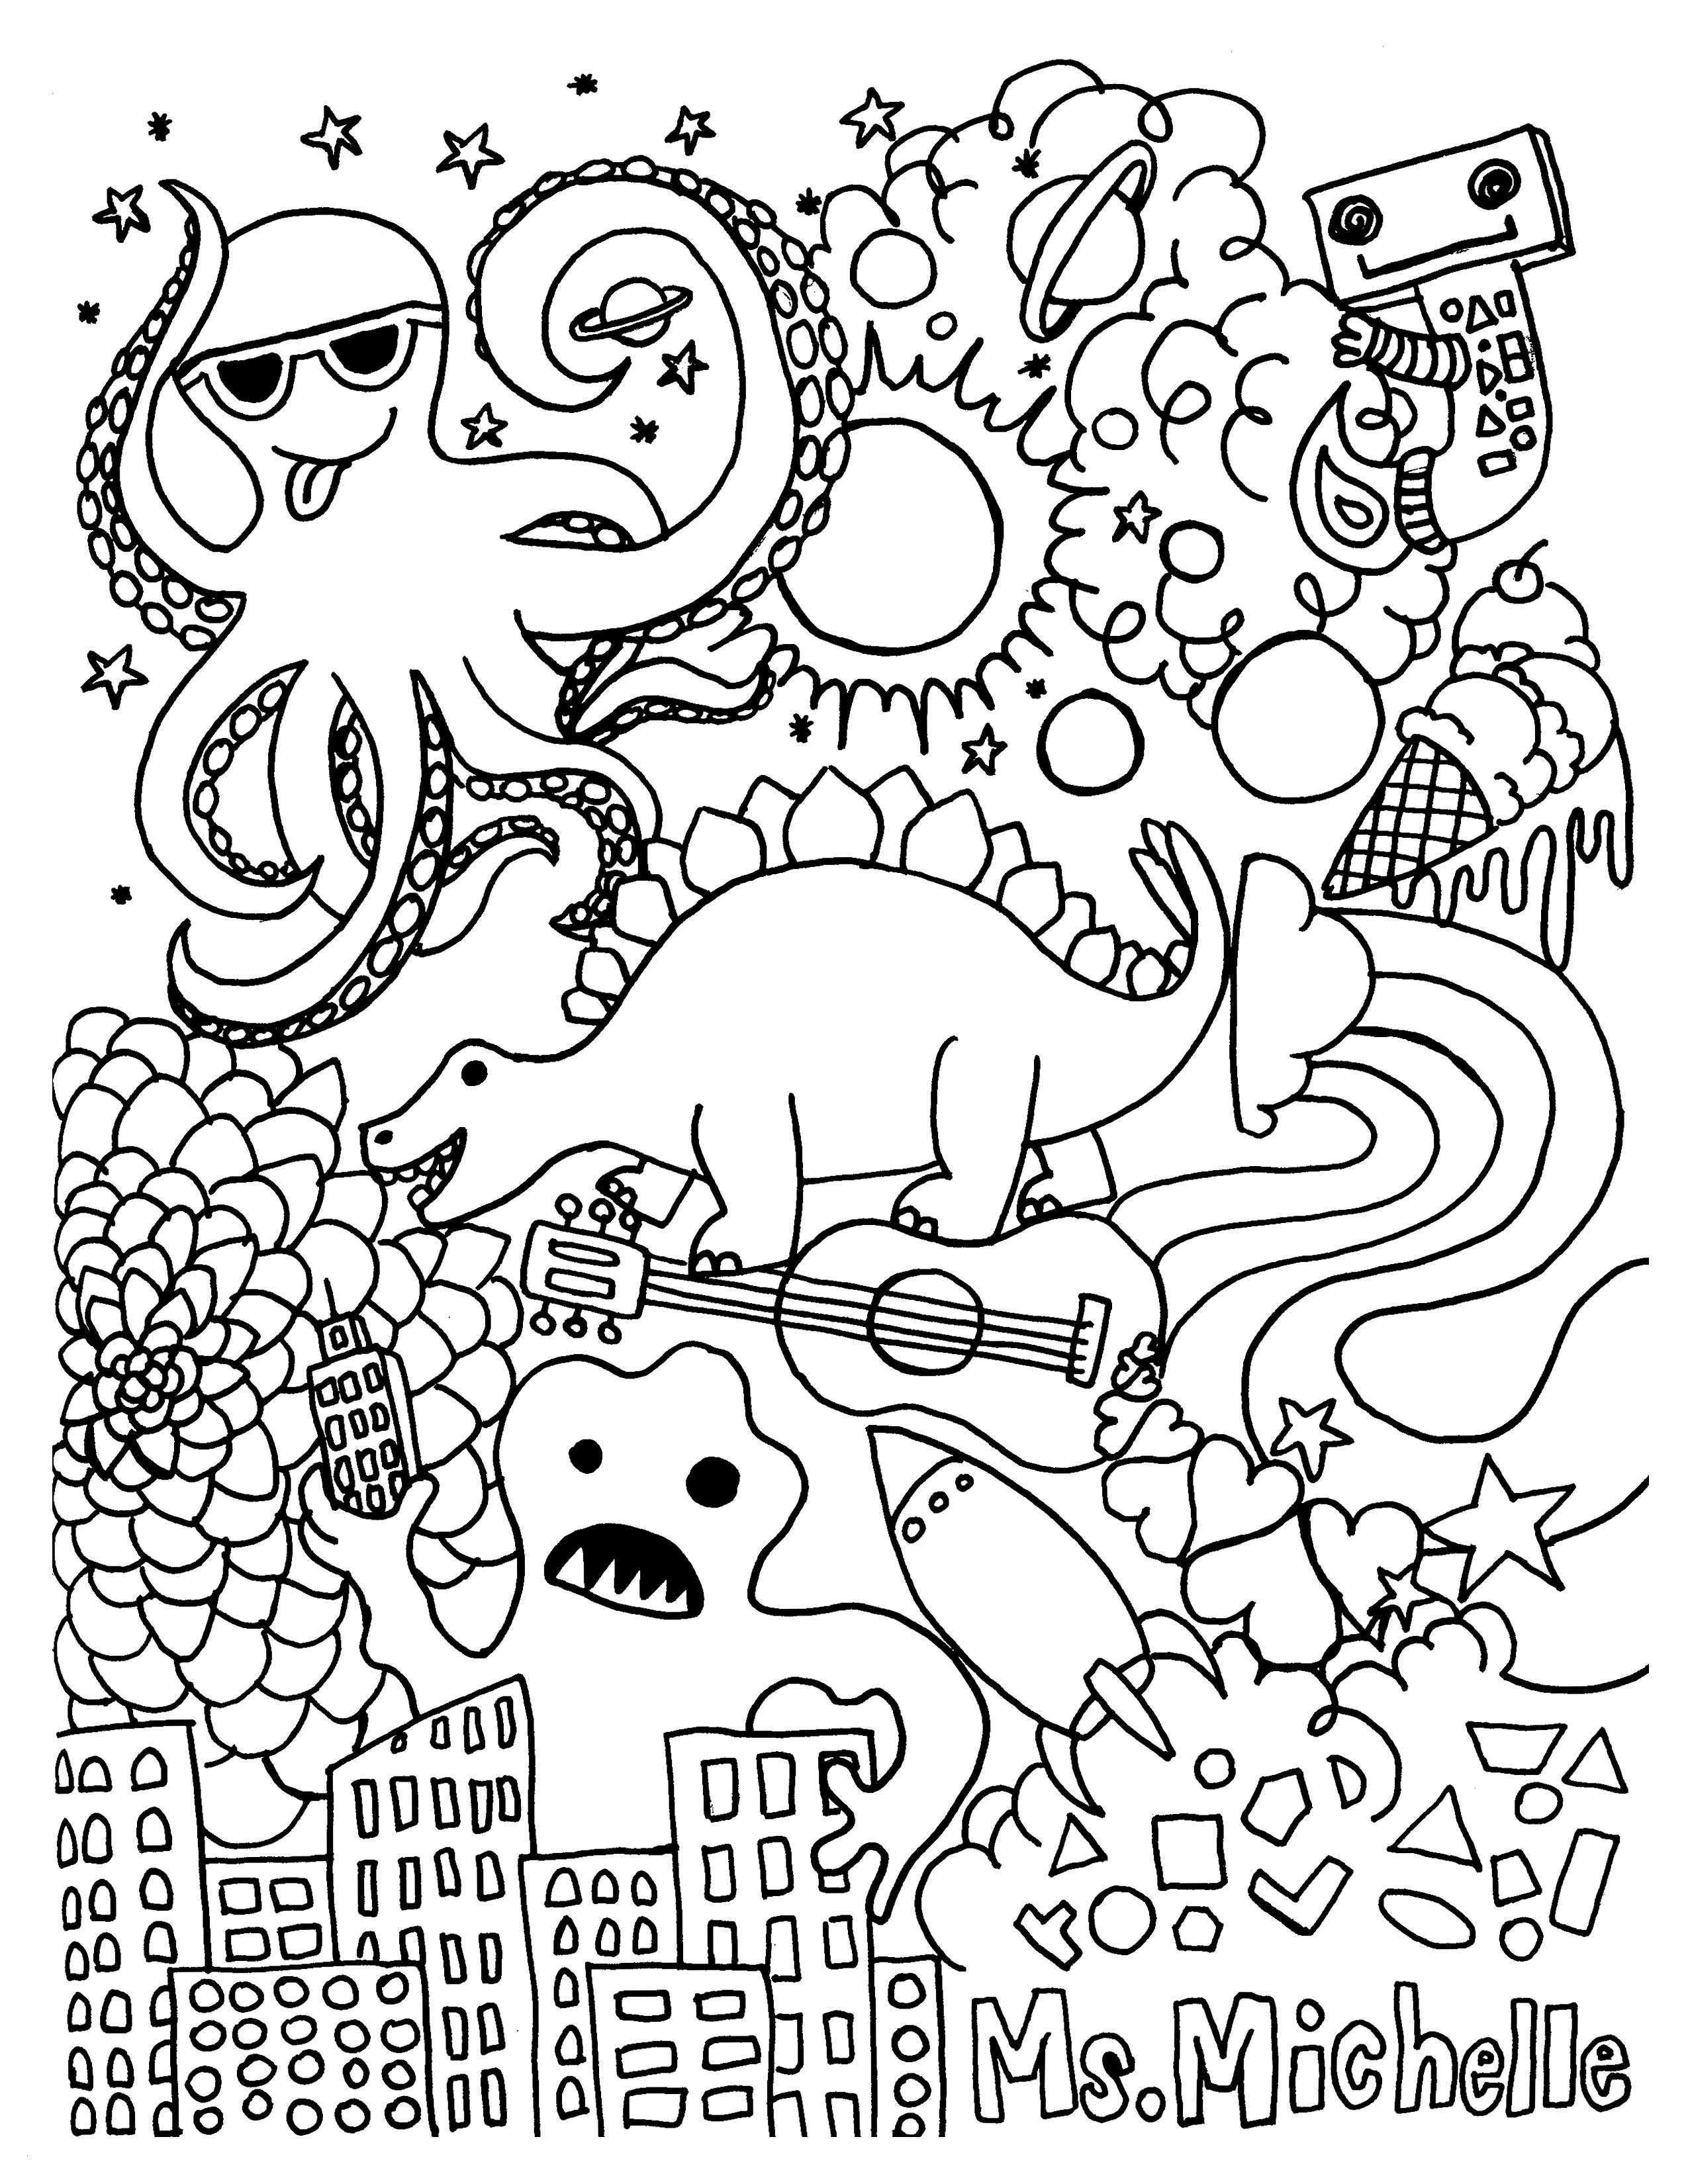 torah tots coloring pages Download-Coloring Pages Showing Respect Beautiful Christmas Story Coloring Pages Coloring Pages Coloring Pages 51 Inspirational 10-j